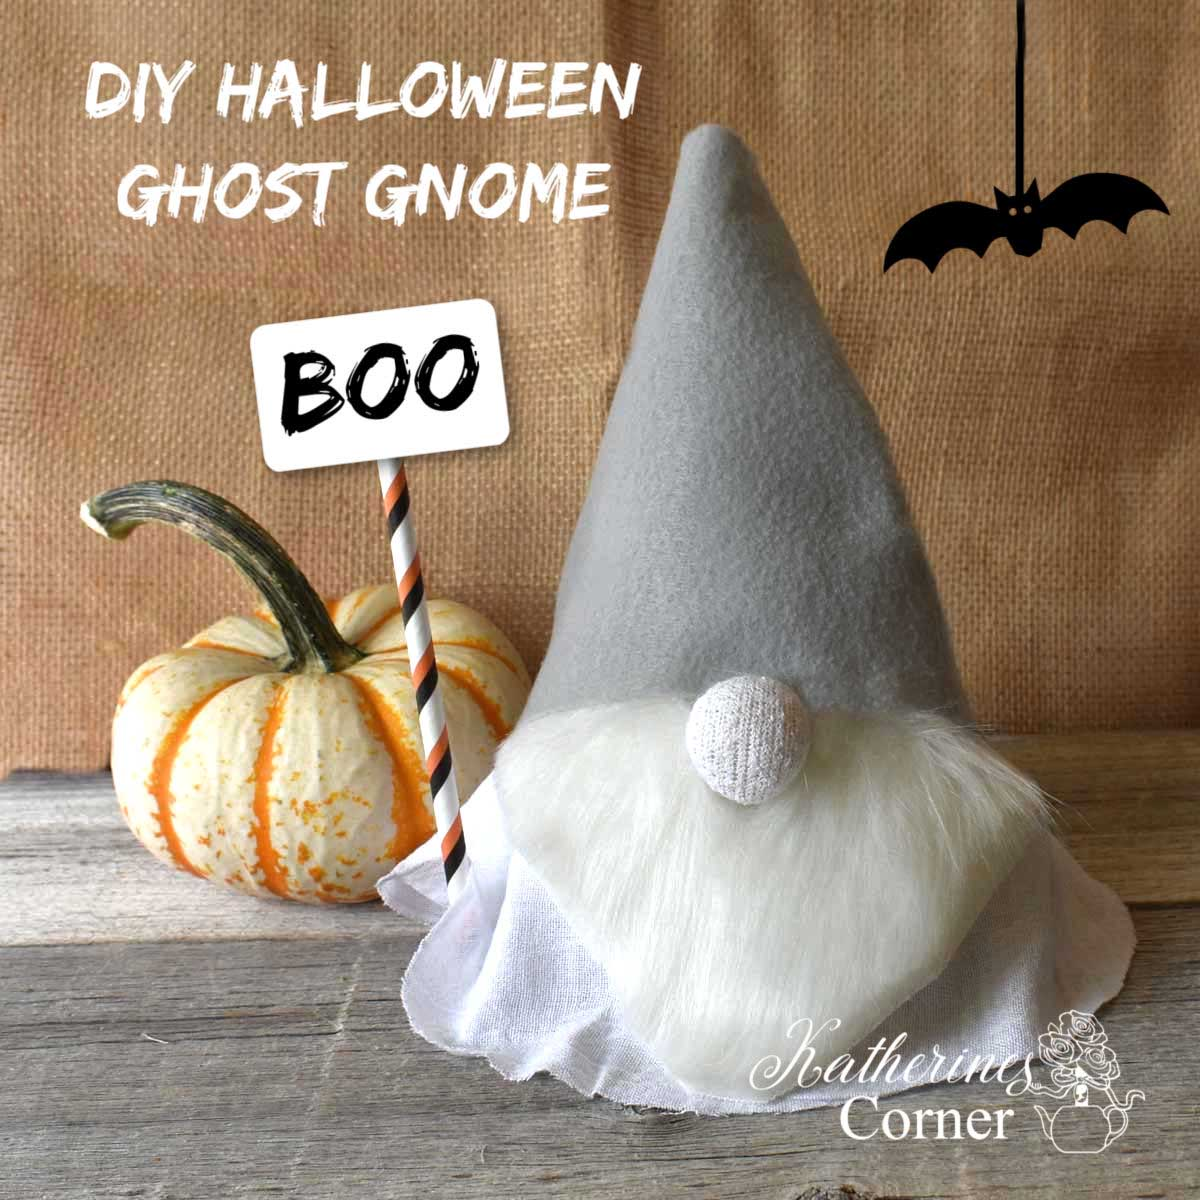 DIY Halloween Ghost Gnome